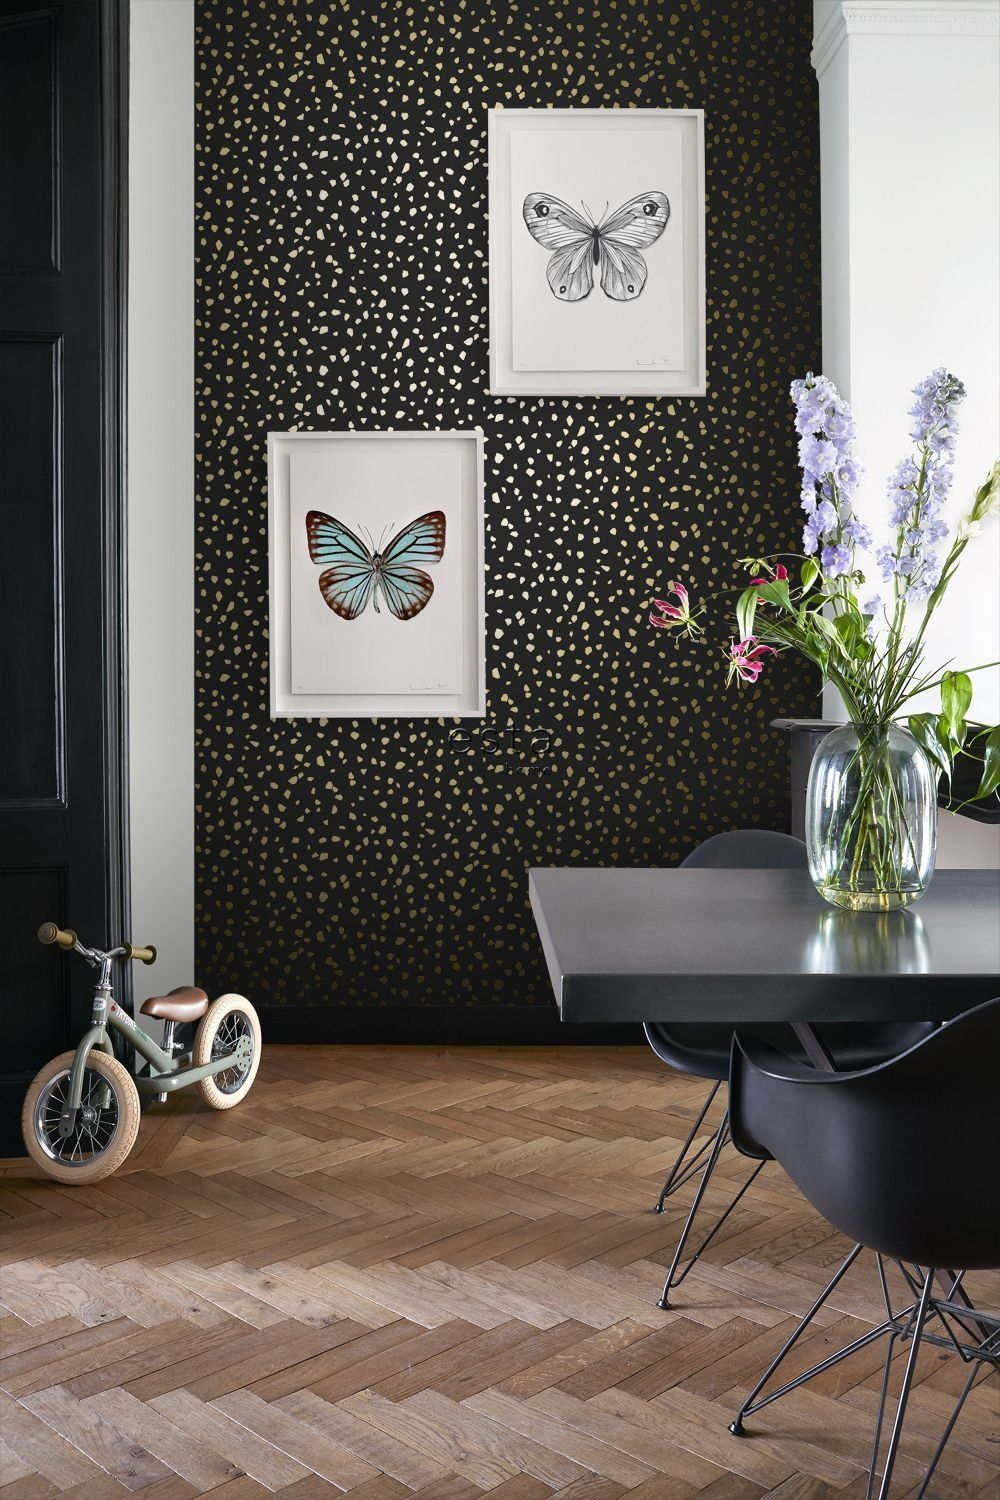 Wallpaper Terrazzo Black And Gold 139134 1000 Accent Wall Bedroom Gold Accent Wall Gold Accent Wall Bedroom